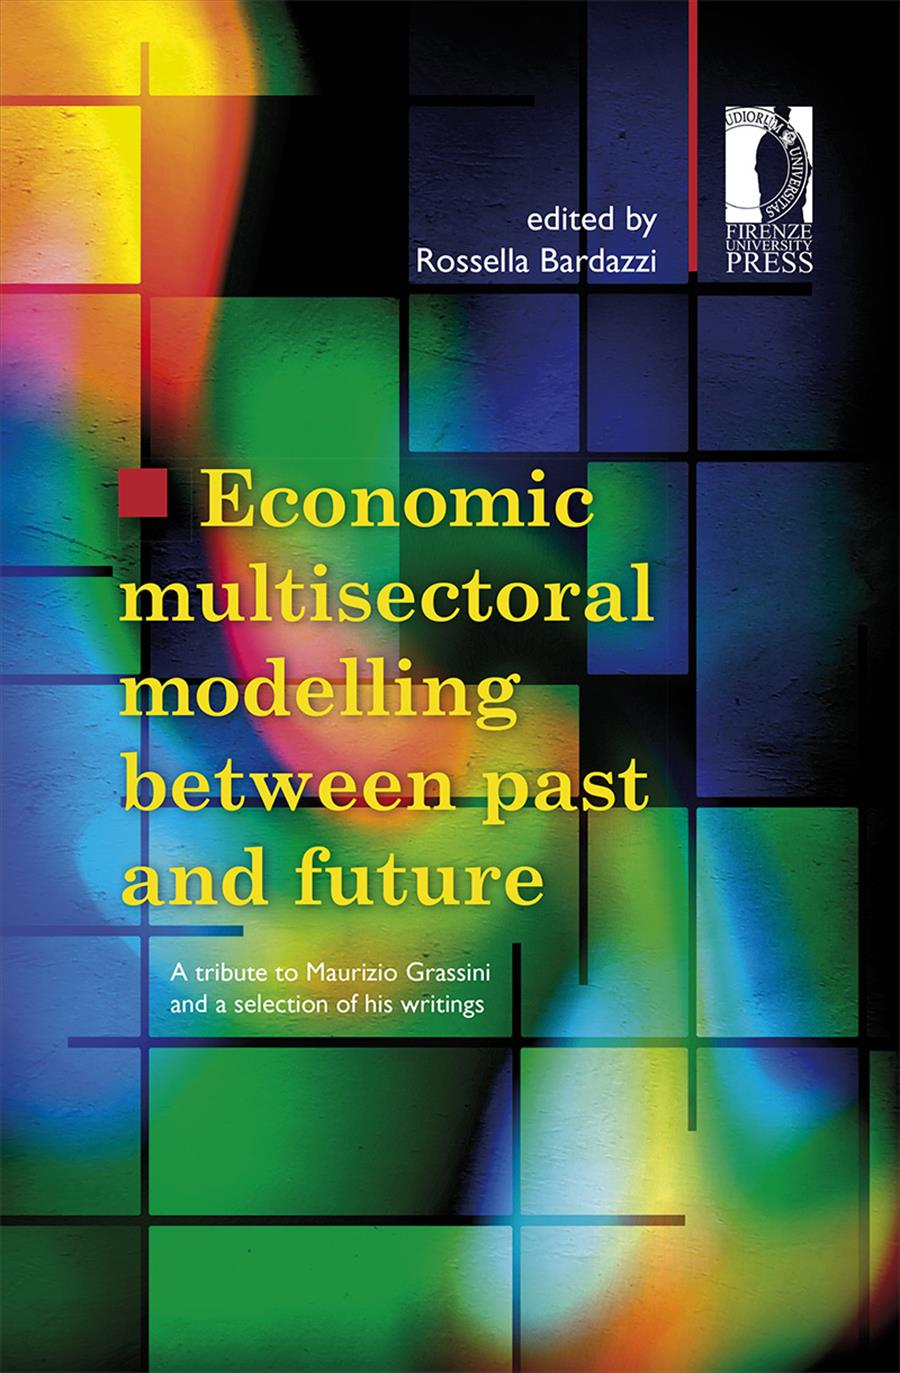 Economic multisectoral modelling between past and future